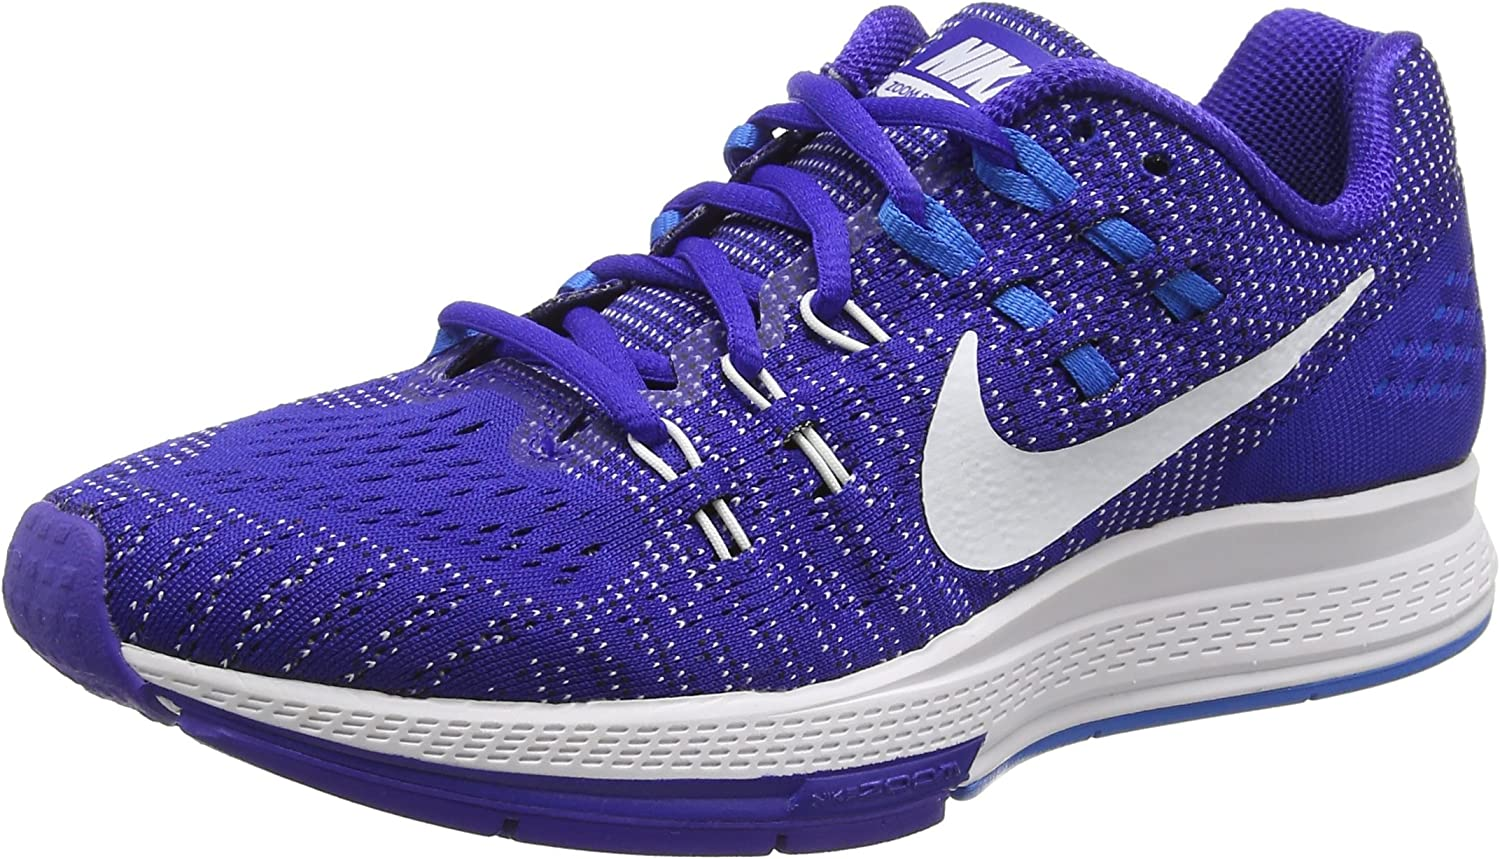 Nike Air Zoom Structure 19 Mens Running shoes